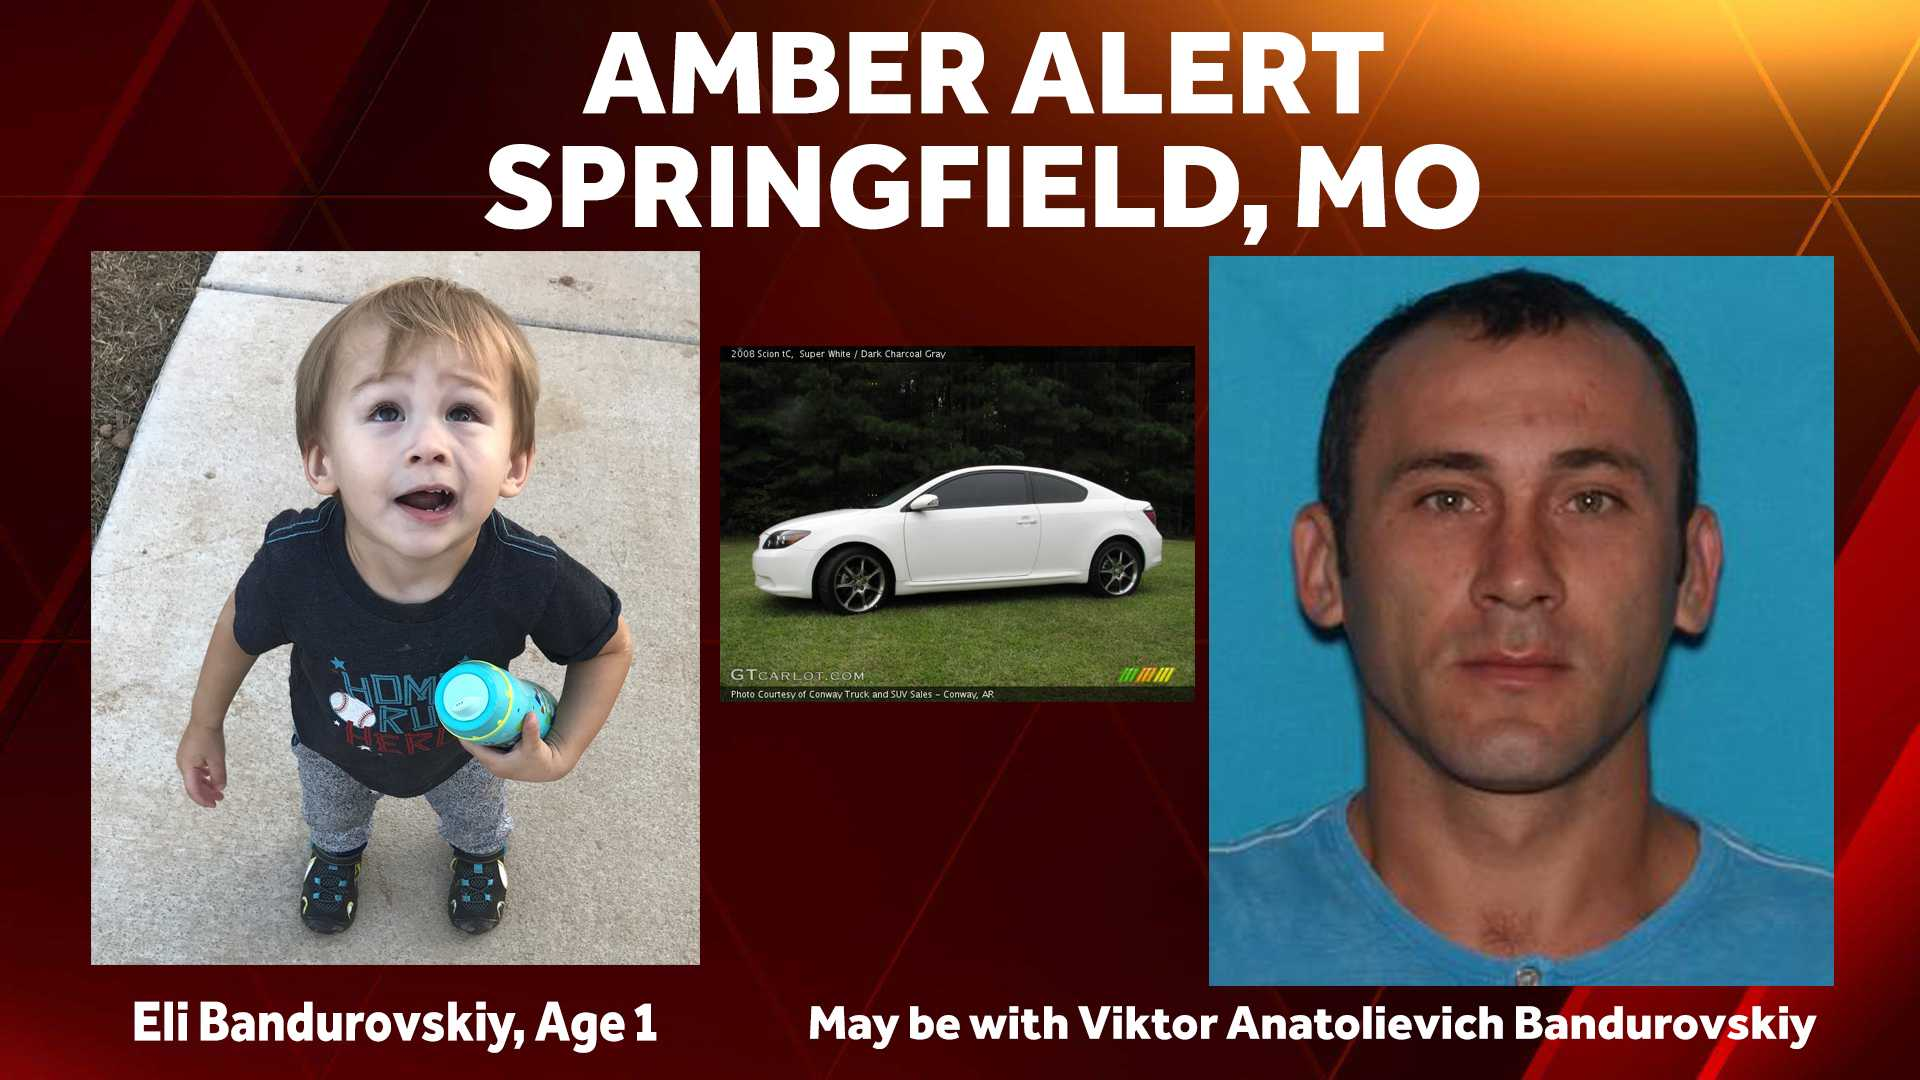 Springfield child safe, father arrested in Texas, police say